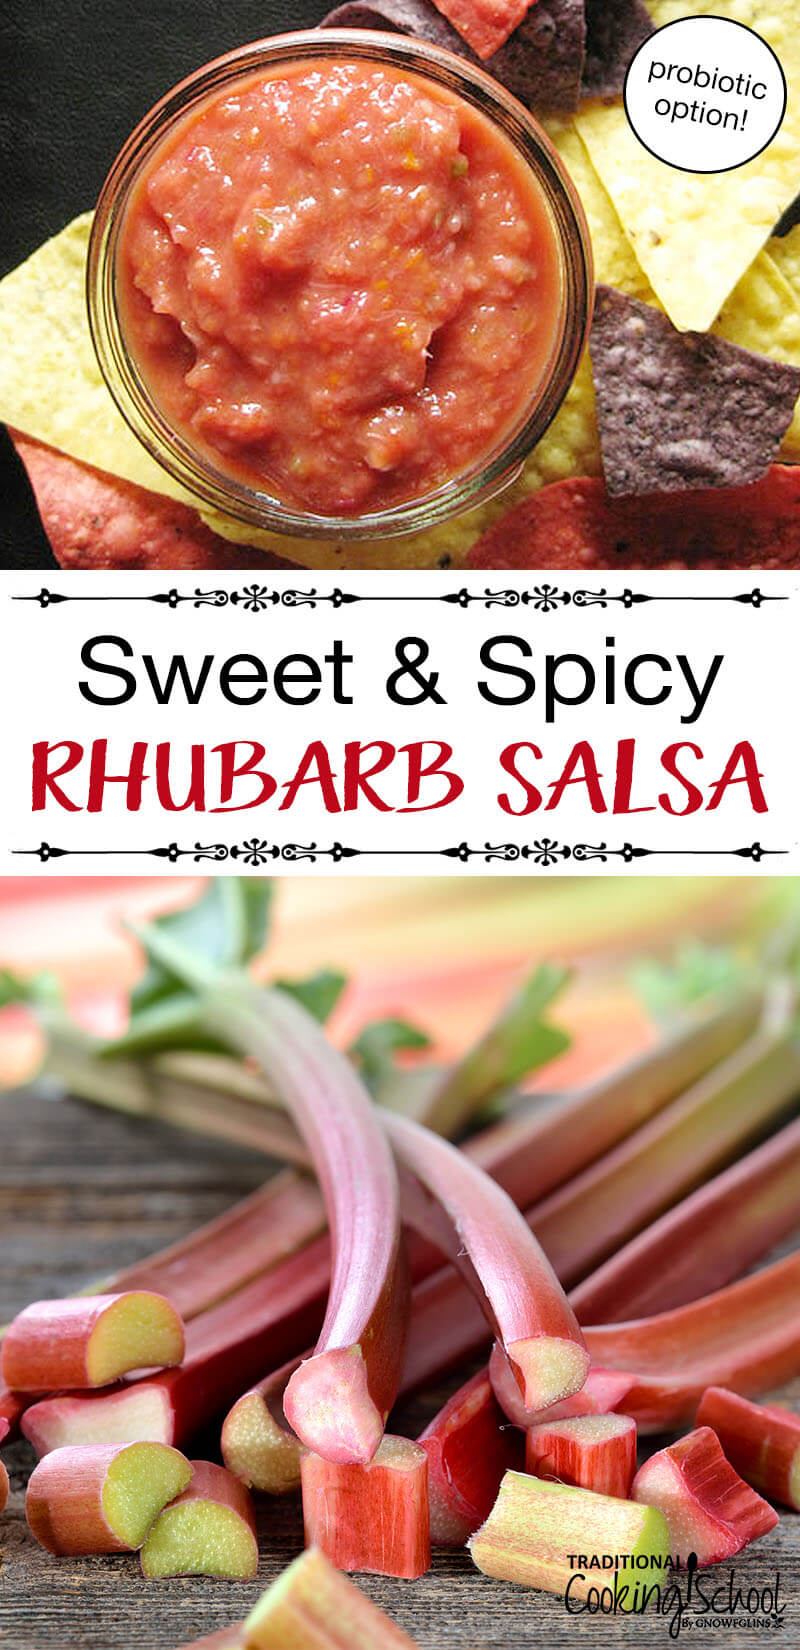 Rhubarb Salsa | Every year at this time my kitchen and freezer overflow with rhubarb-laden goodies. But my favorite use for rhubarb isn't a sweet dessert, though -- it's this scrumptious rhubarb salsa. | TraditionalCookingSchool.com